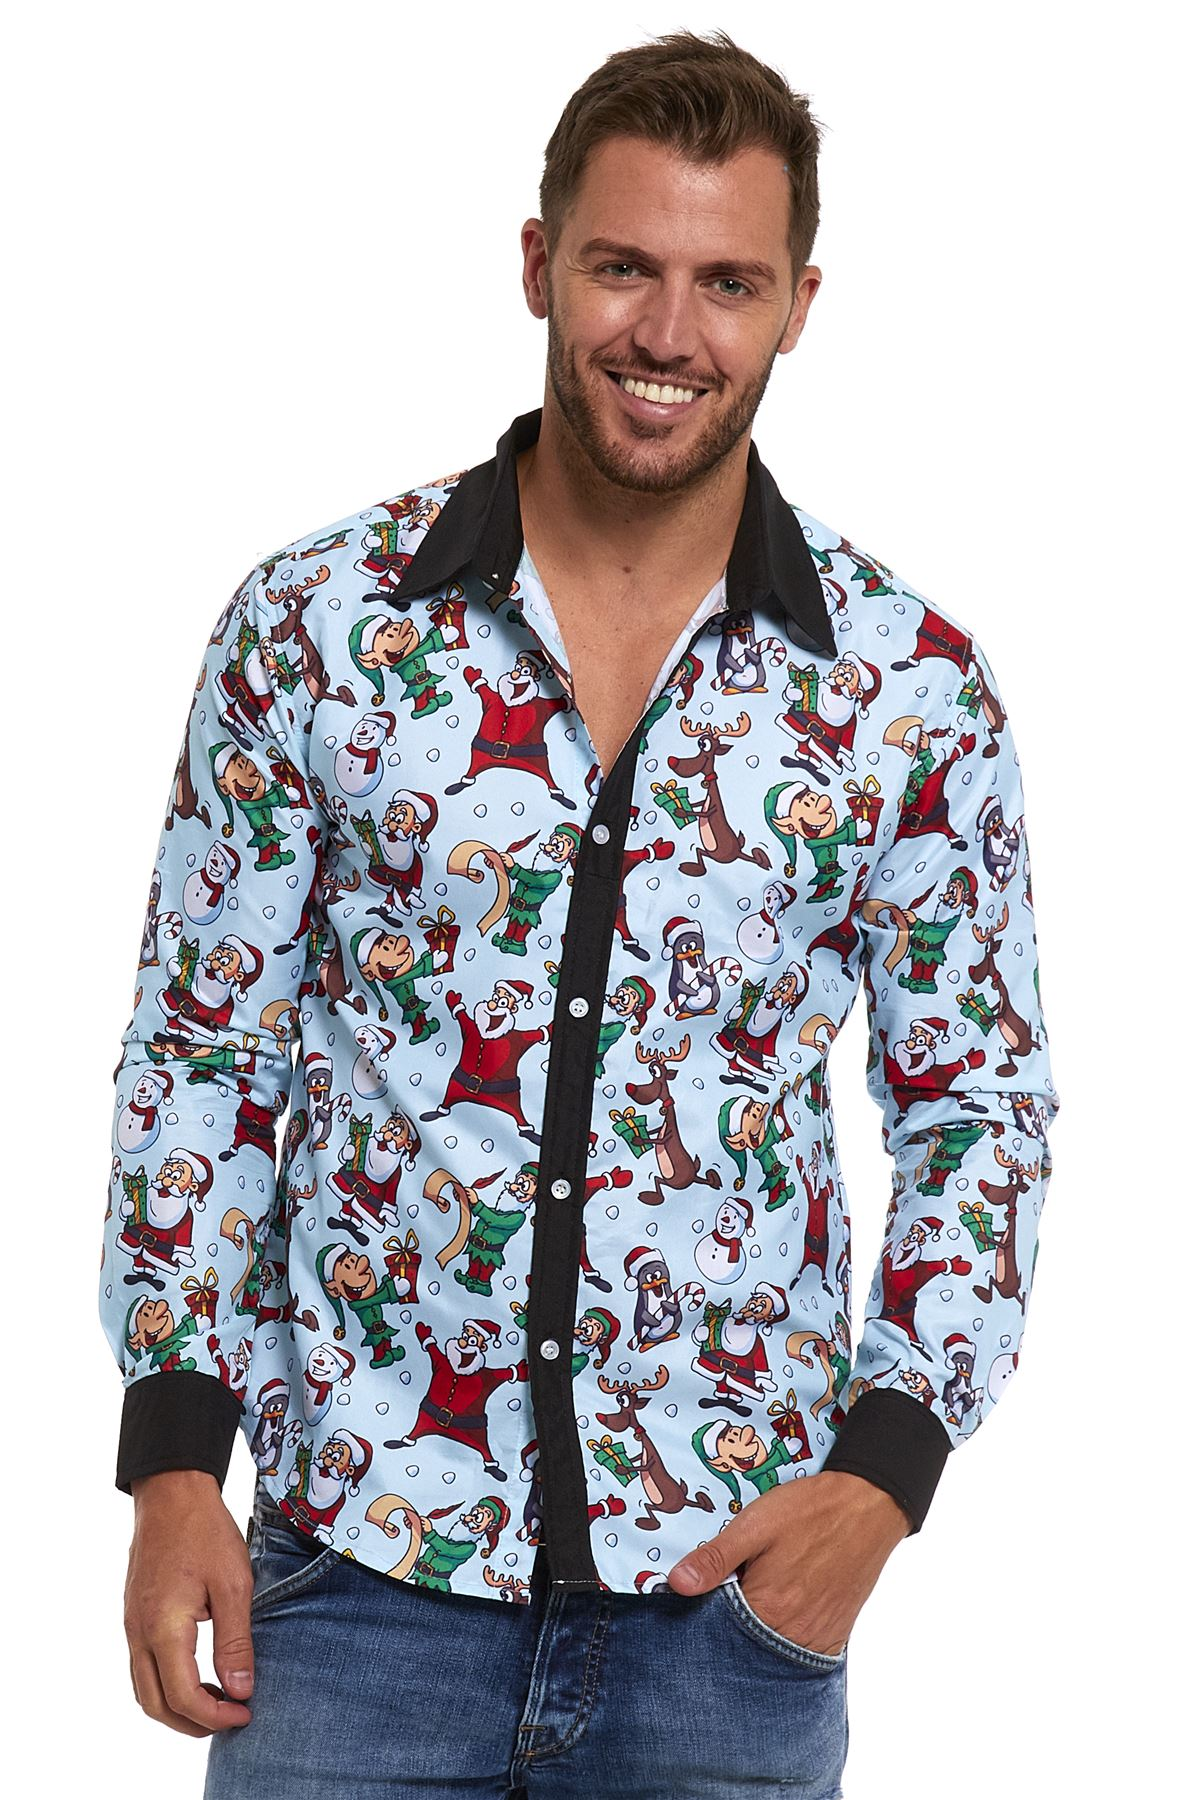 Best christmas tops for women for sale. Cheap christmas tops for women with excellent quality and fast delivery. | failvideo.ml Dress For Women Summer Dress For Women Sweater Dress For Women Long Hoodie Women Christmas Wall Art Stickers Red Blazer For Men Christmas Baubles Two Piece Swimwear Women Cat Christmas Dress Sleeveless Women Shirt.